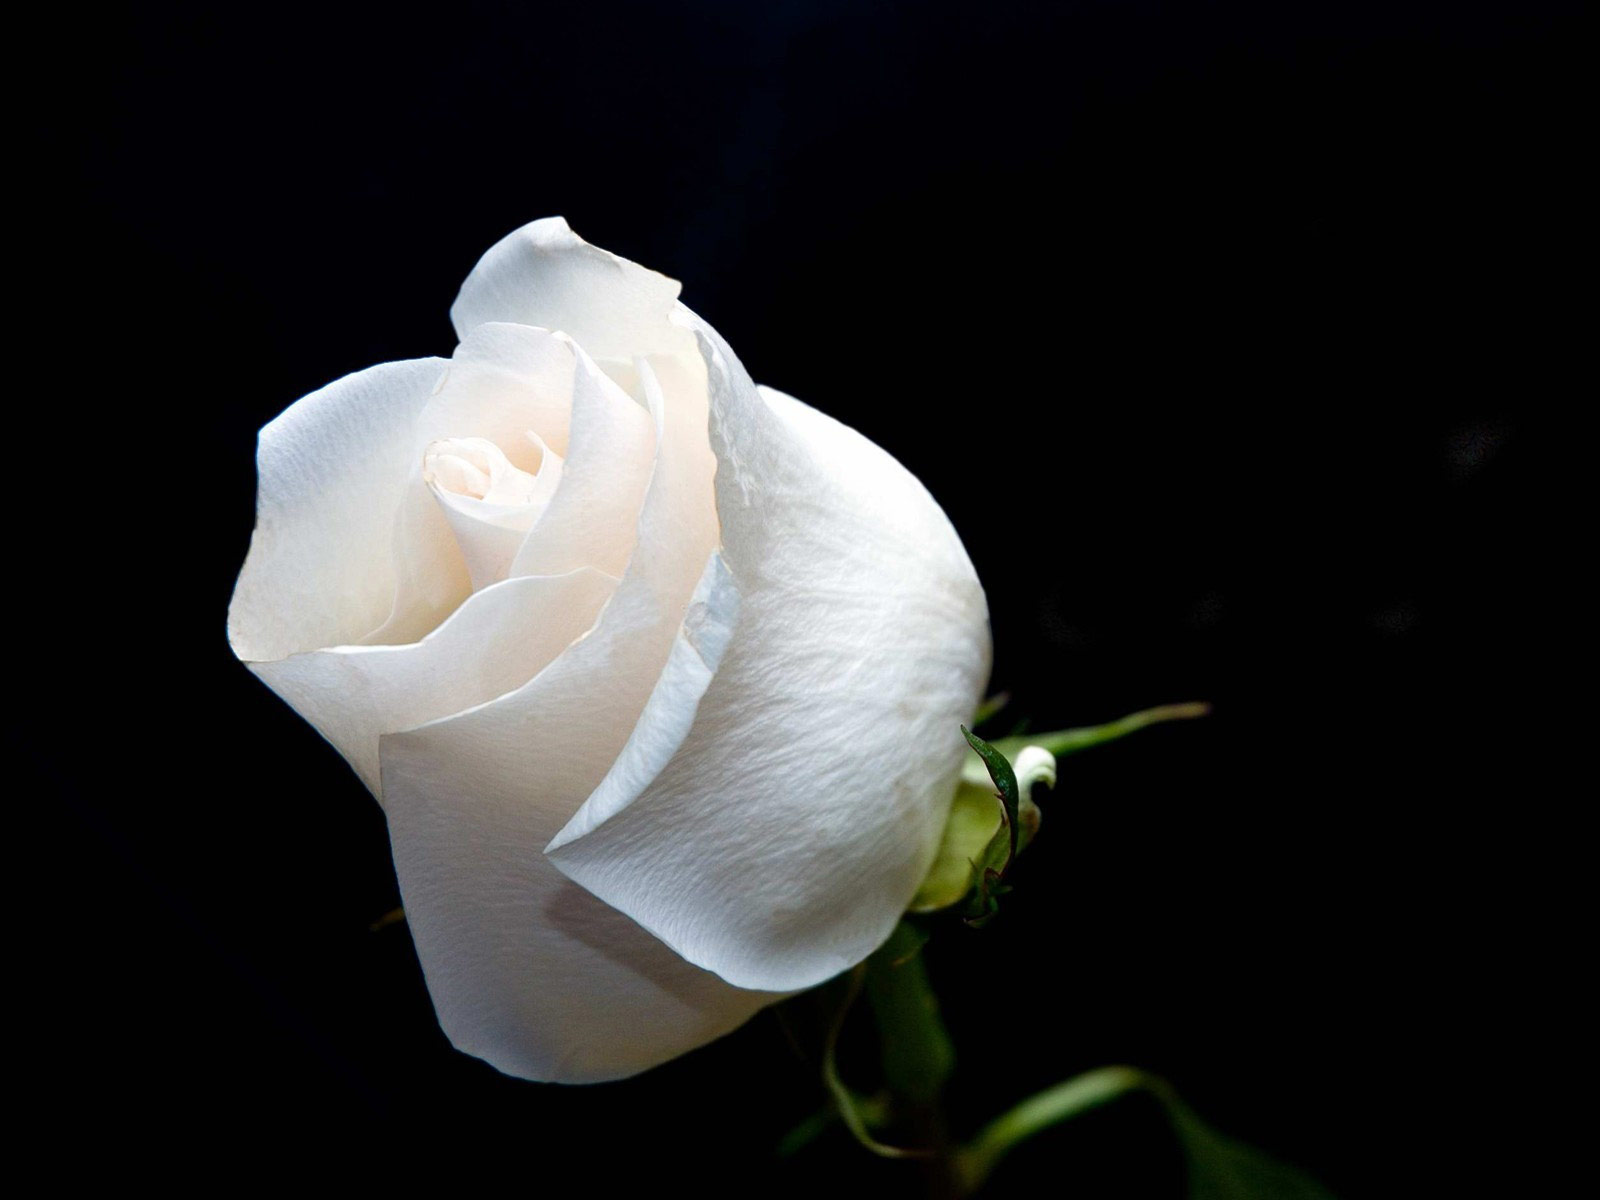 white rose backgrounds wallpapers - photo #30